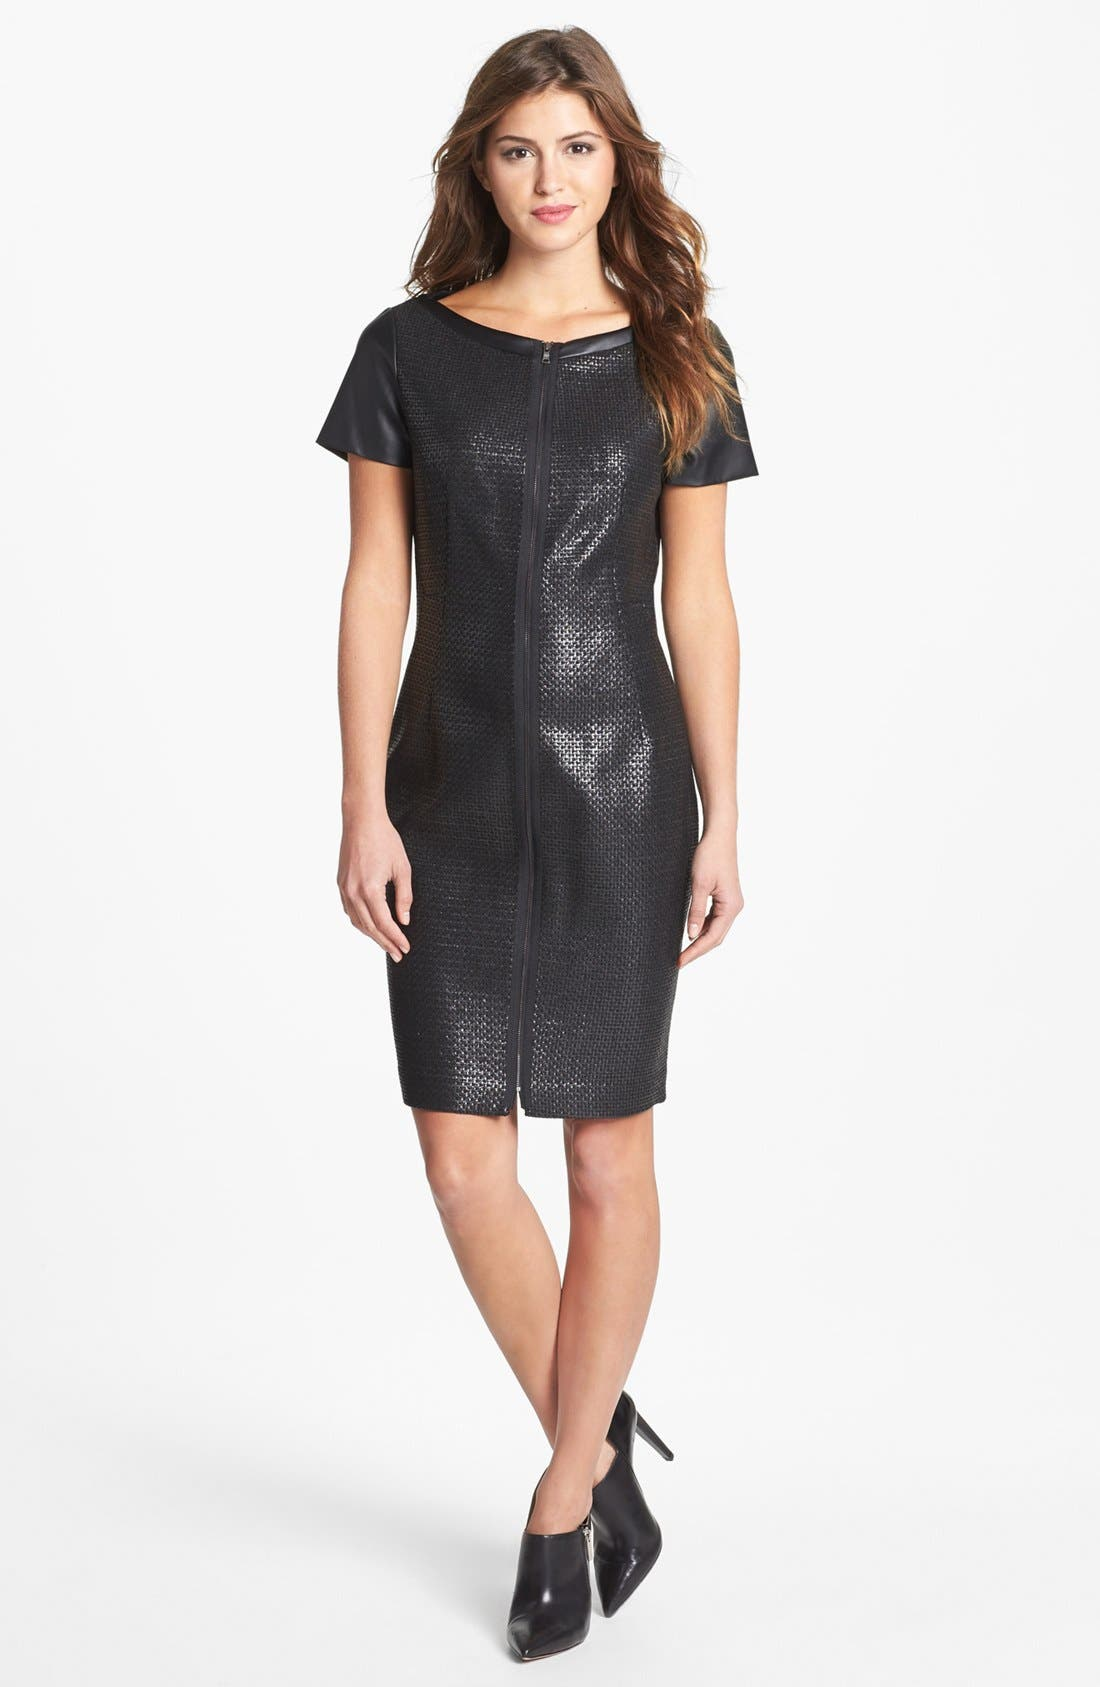 Main Image - T Tahari 'Lalita' Textured Front Faux Leather Dress